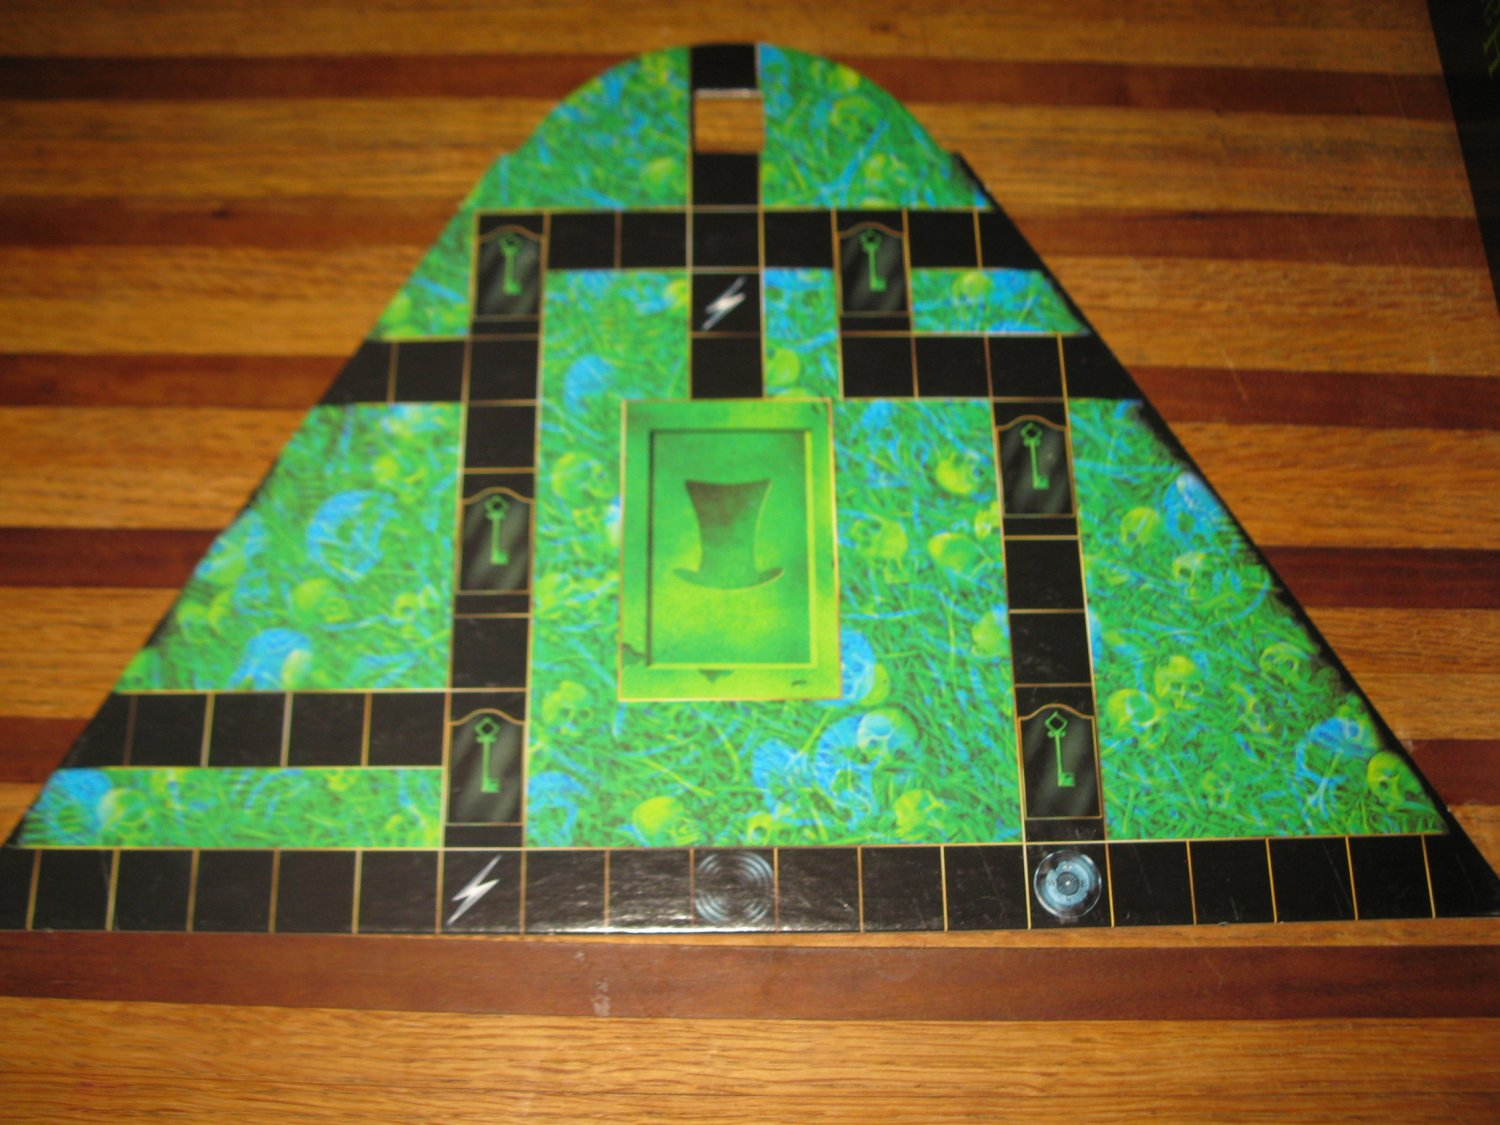 1995 Atmosfear Board Game Piece: Player Pyramid Board #5